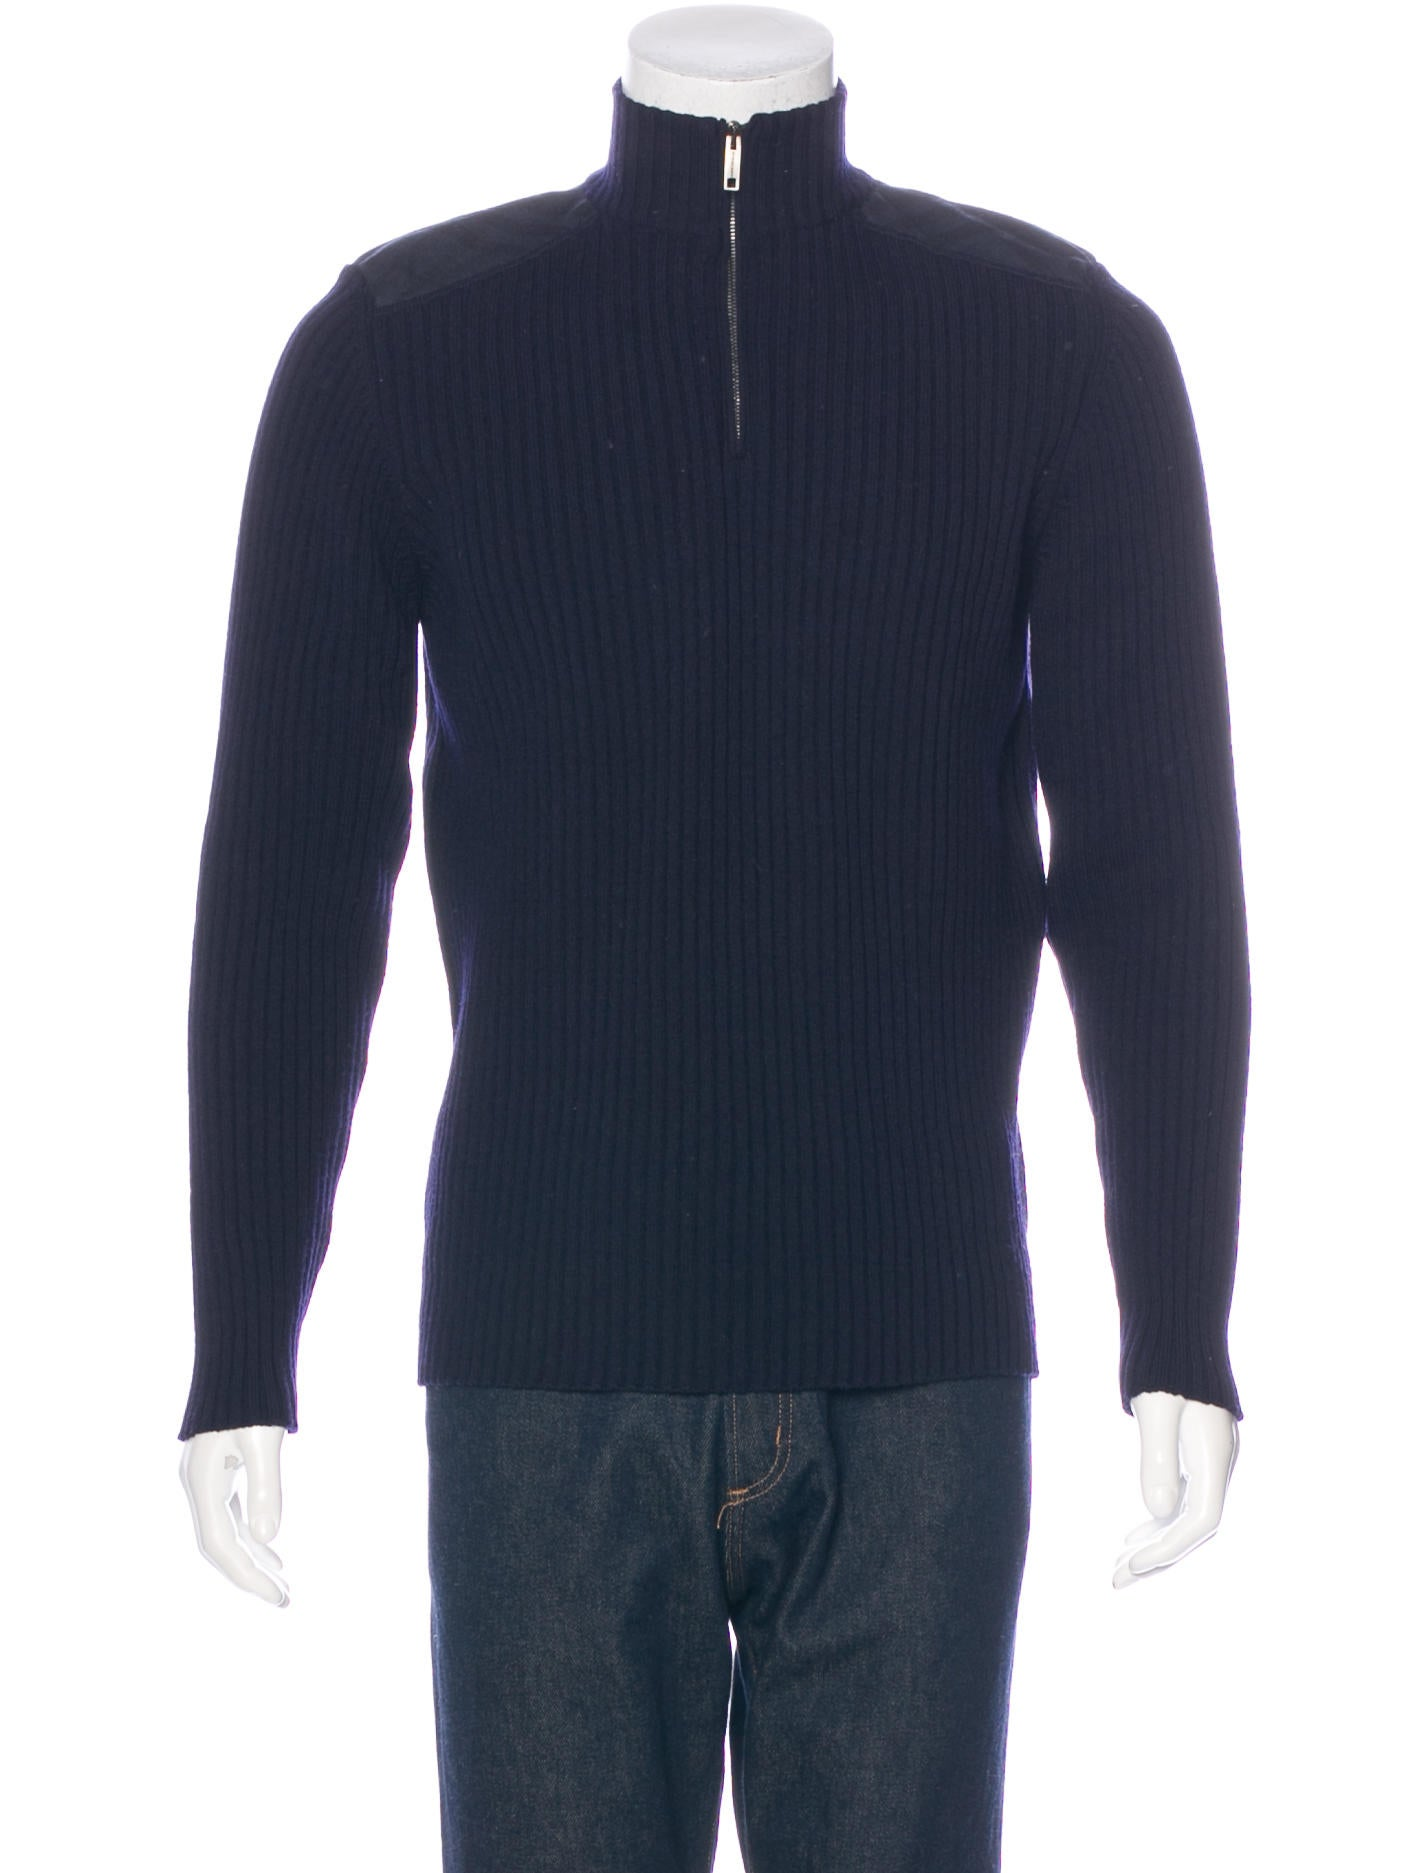 Burberry London Wool-Blend Half-Zip Sweater - Clothing - WBURL23760 | The RealReal